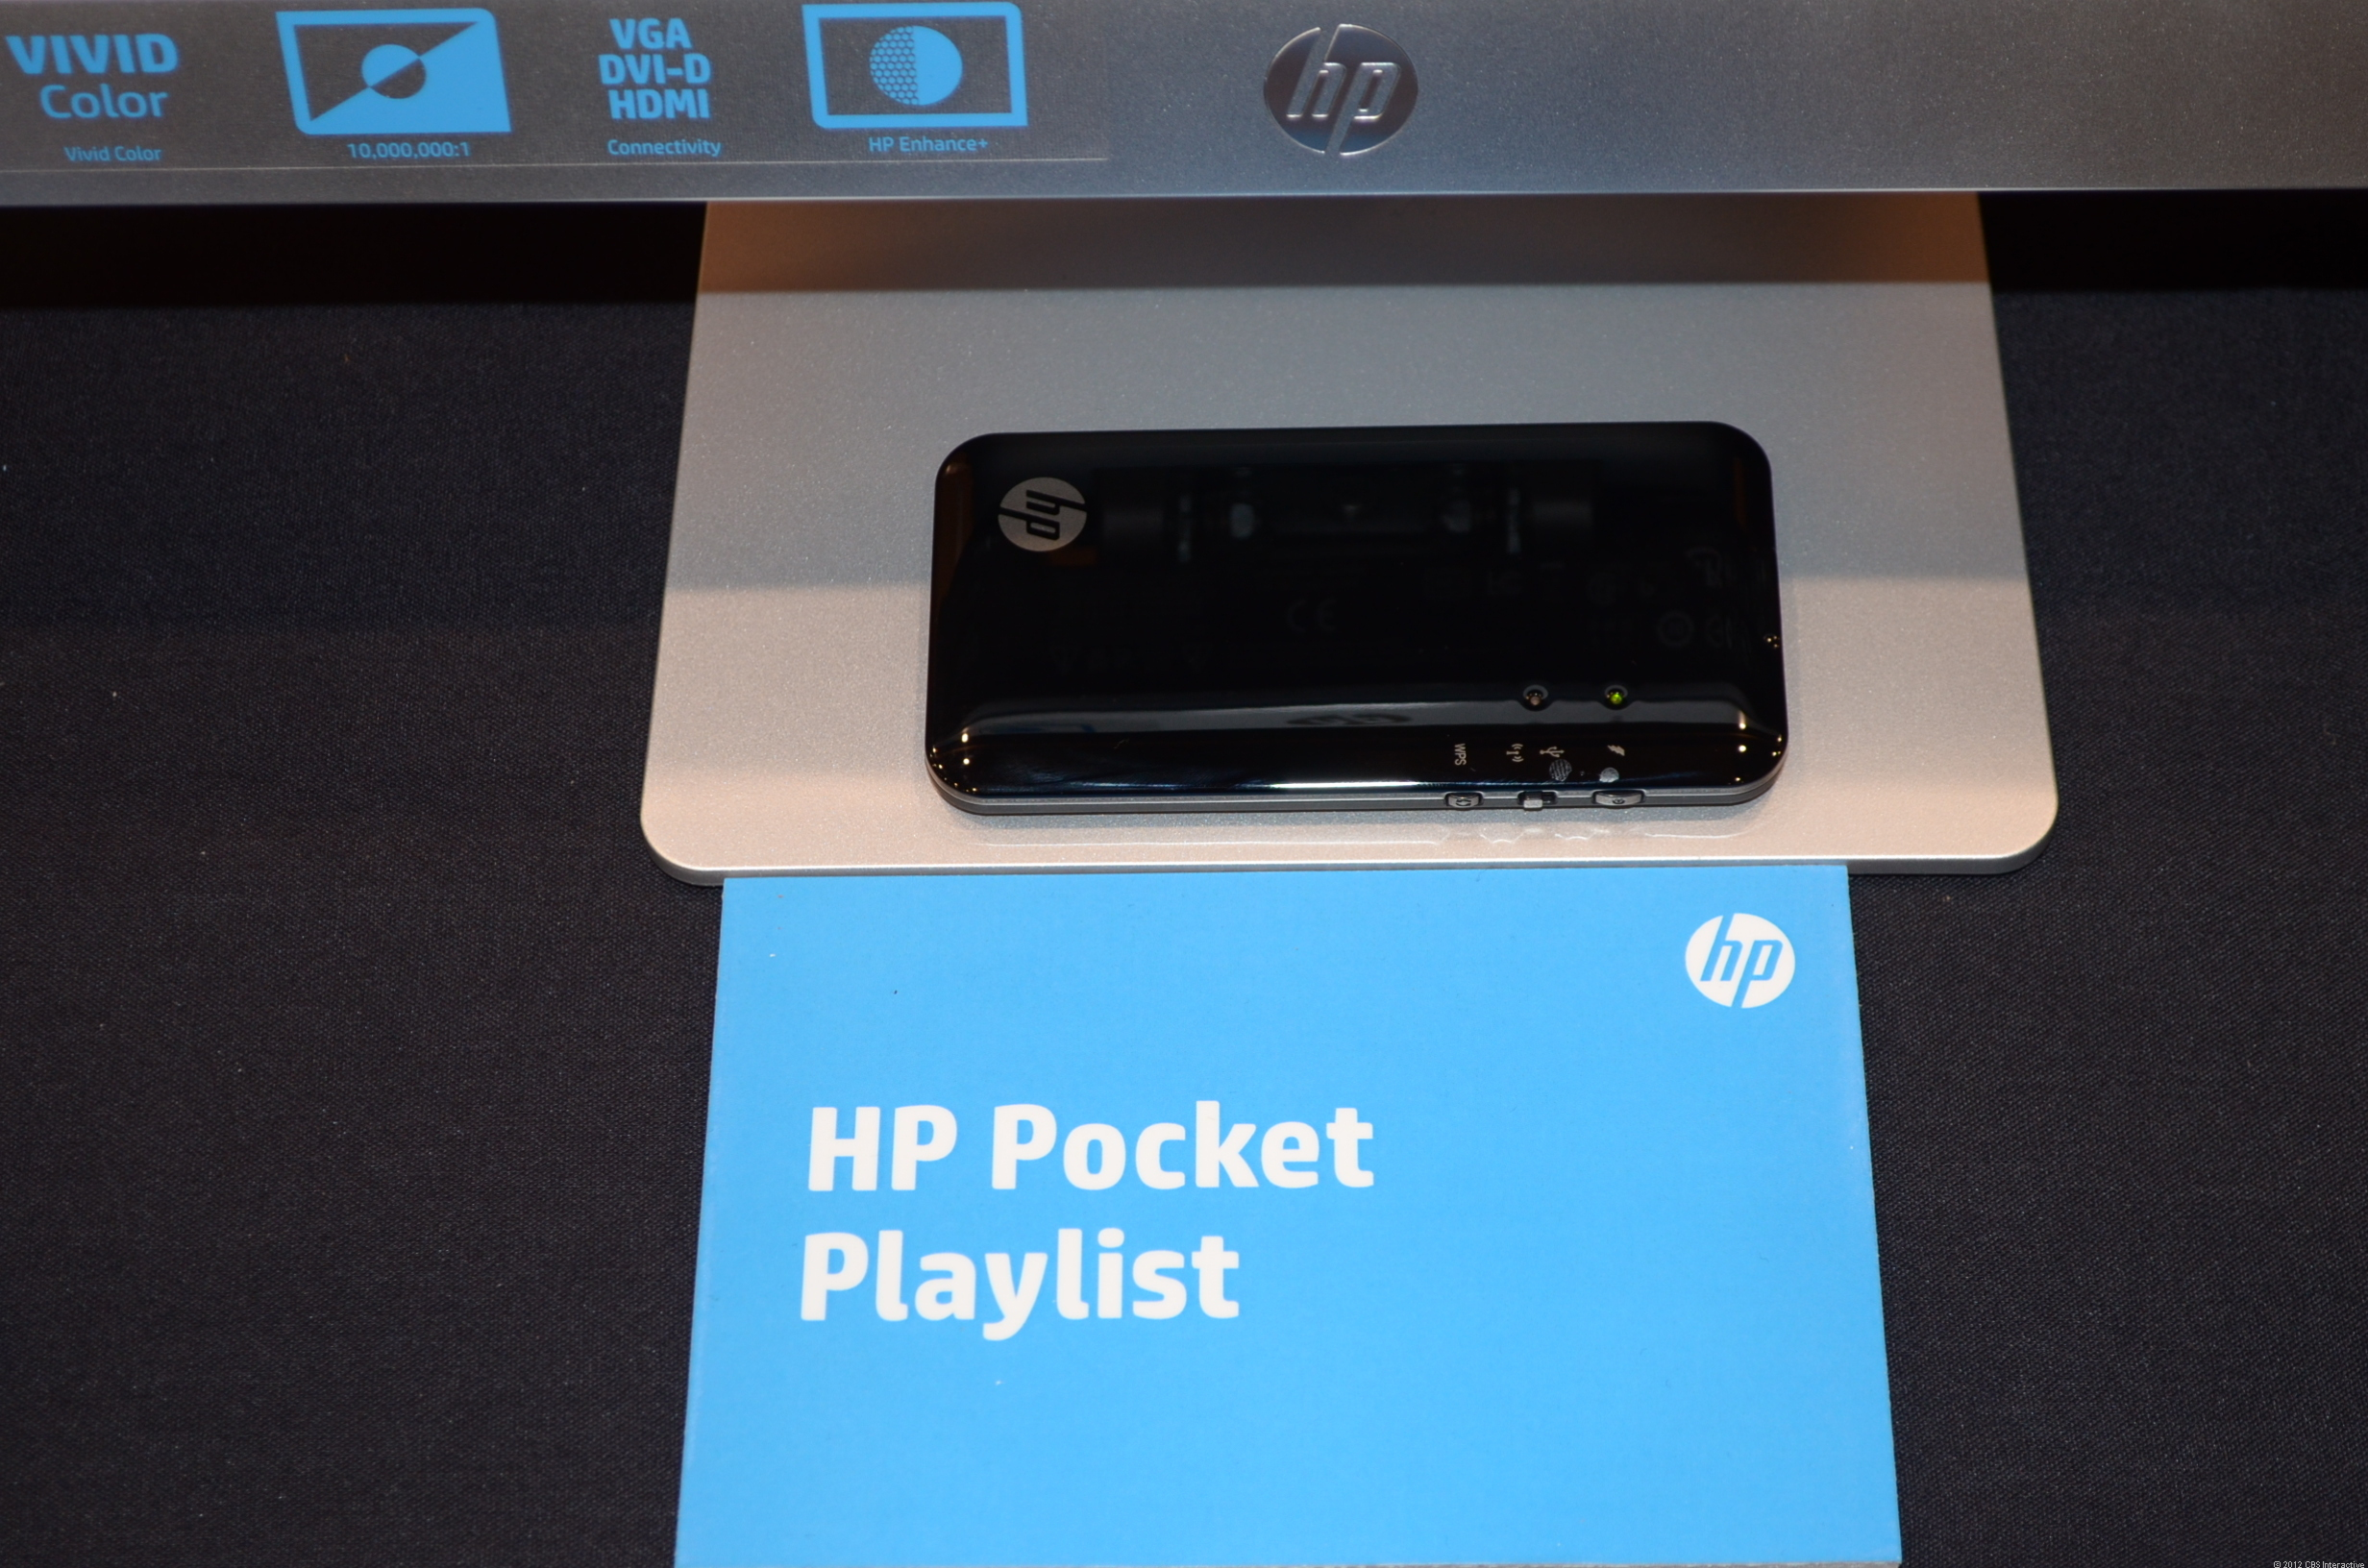 The HP Pocket Playlist at CES 2013.